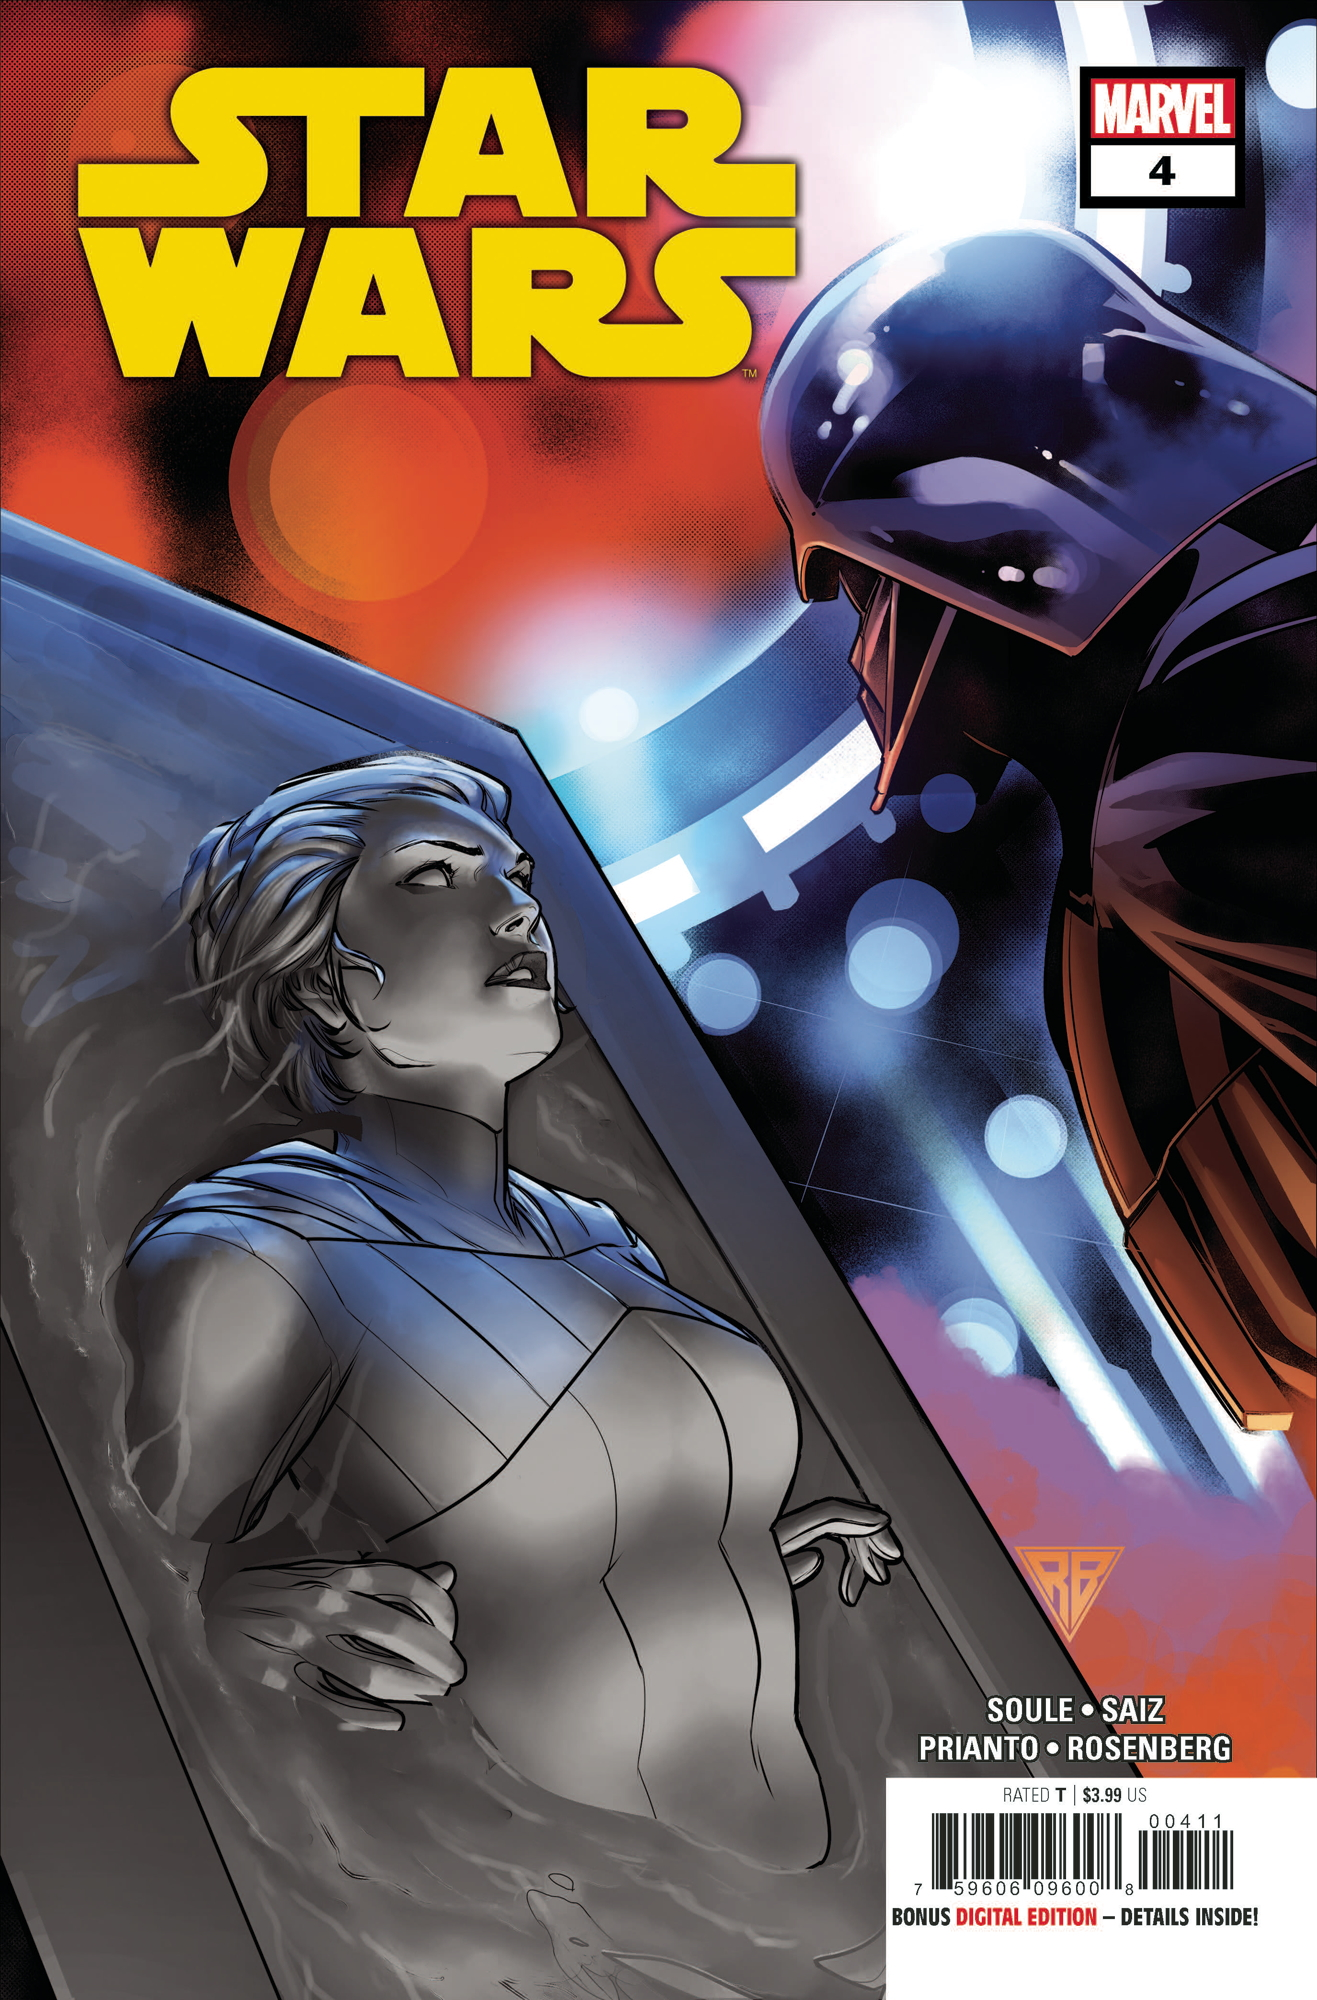 Star Wars #4 (18.03.2020)